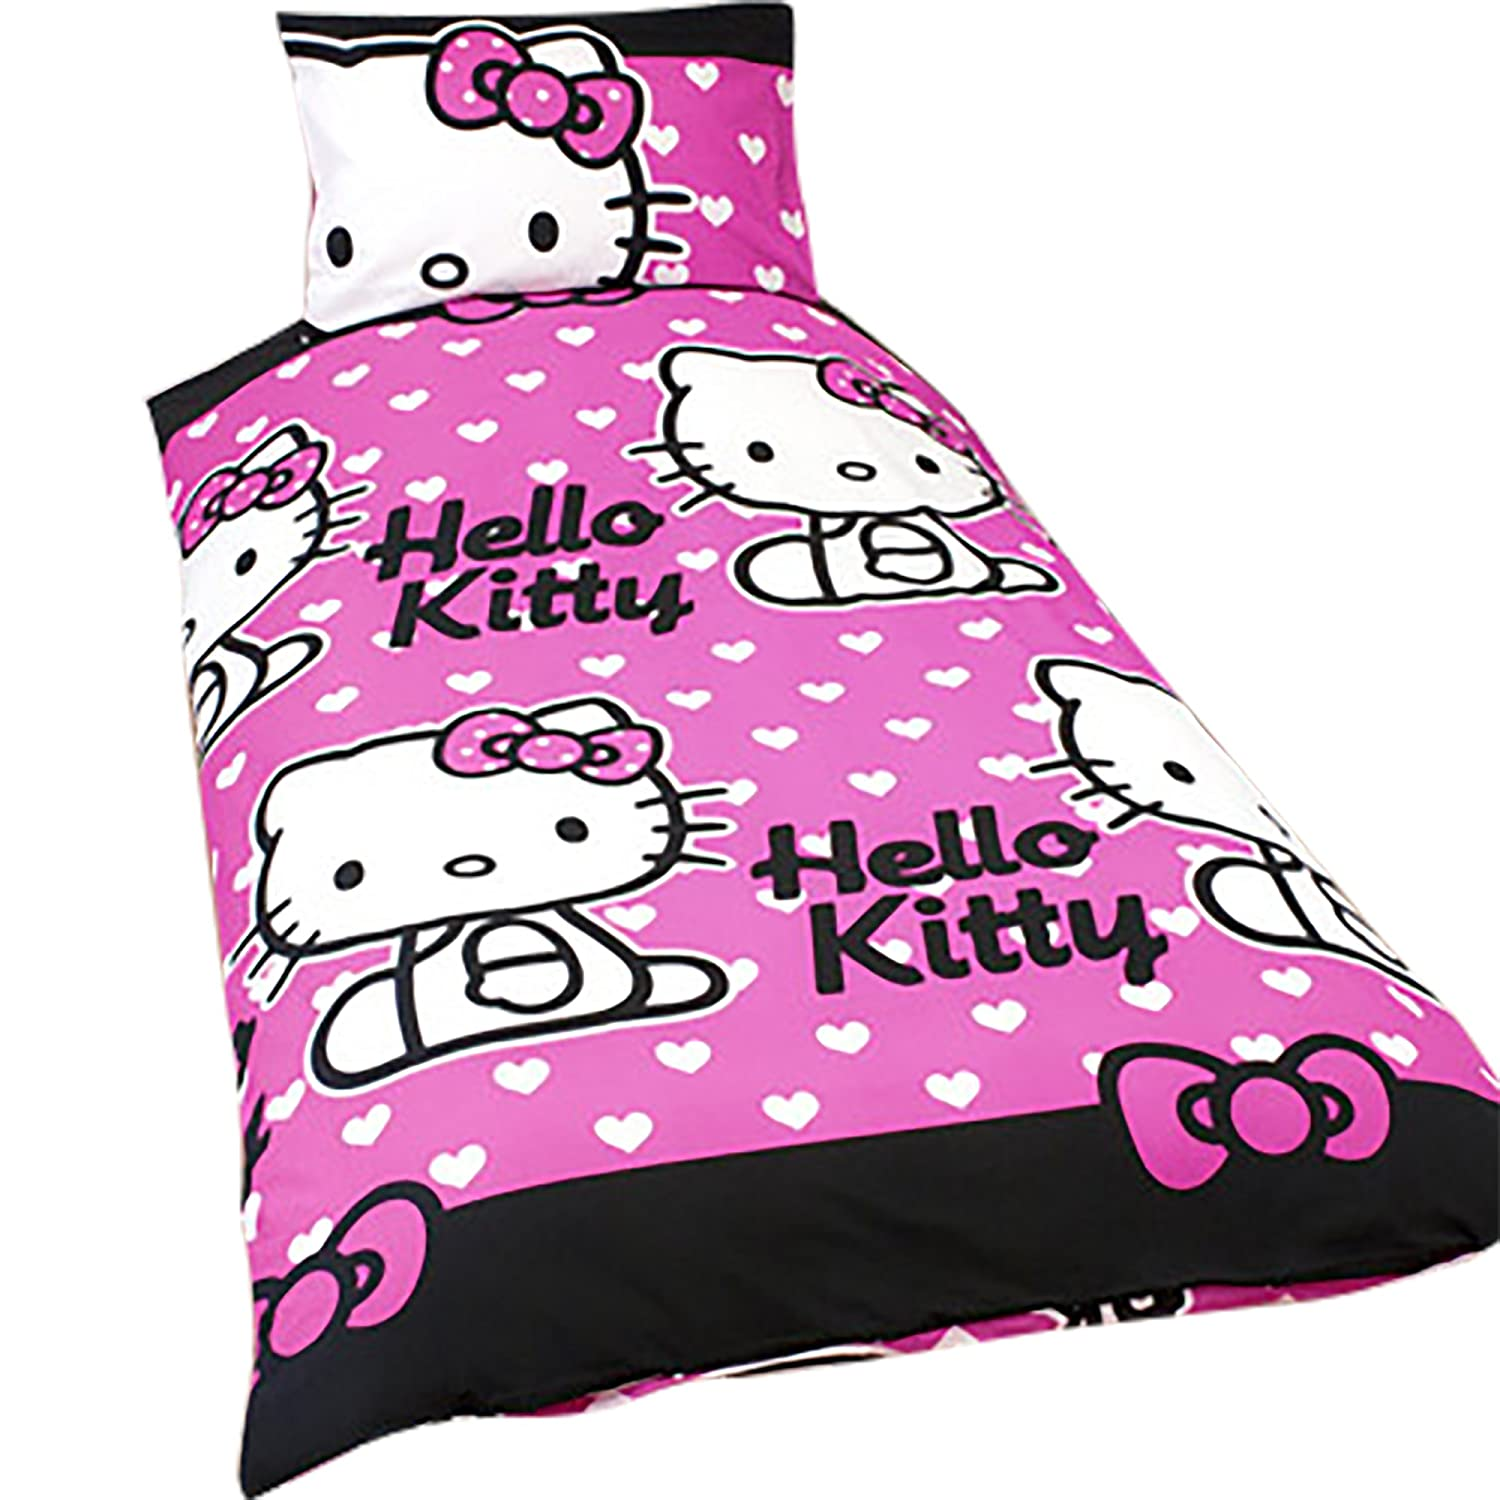 HELLO KITTY 2 IN 1 REVERSIBLE DESIGN SINGLE DUVET COVER AND PILLOW CASE SET